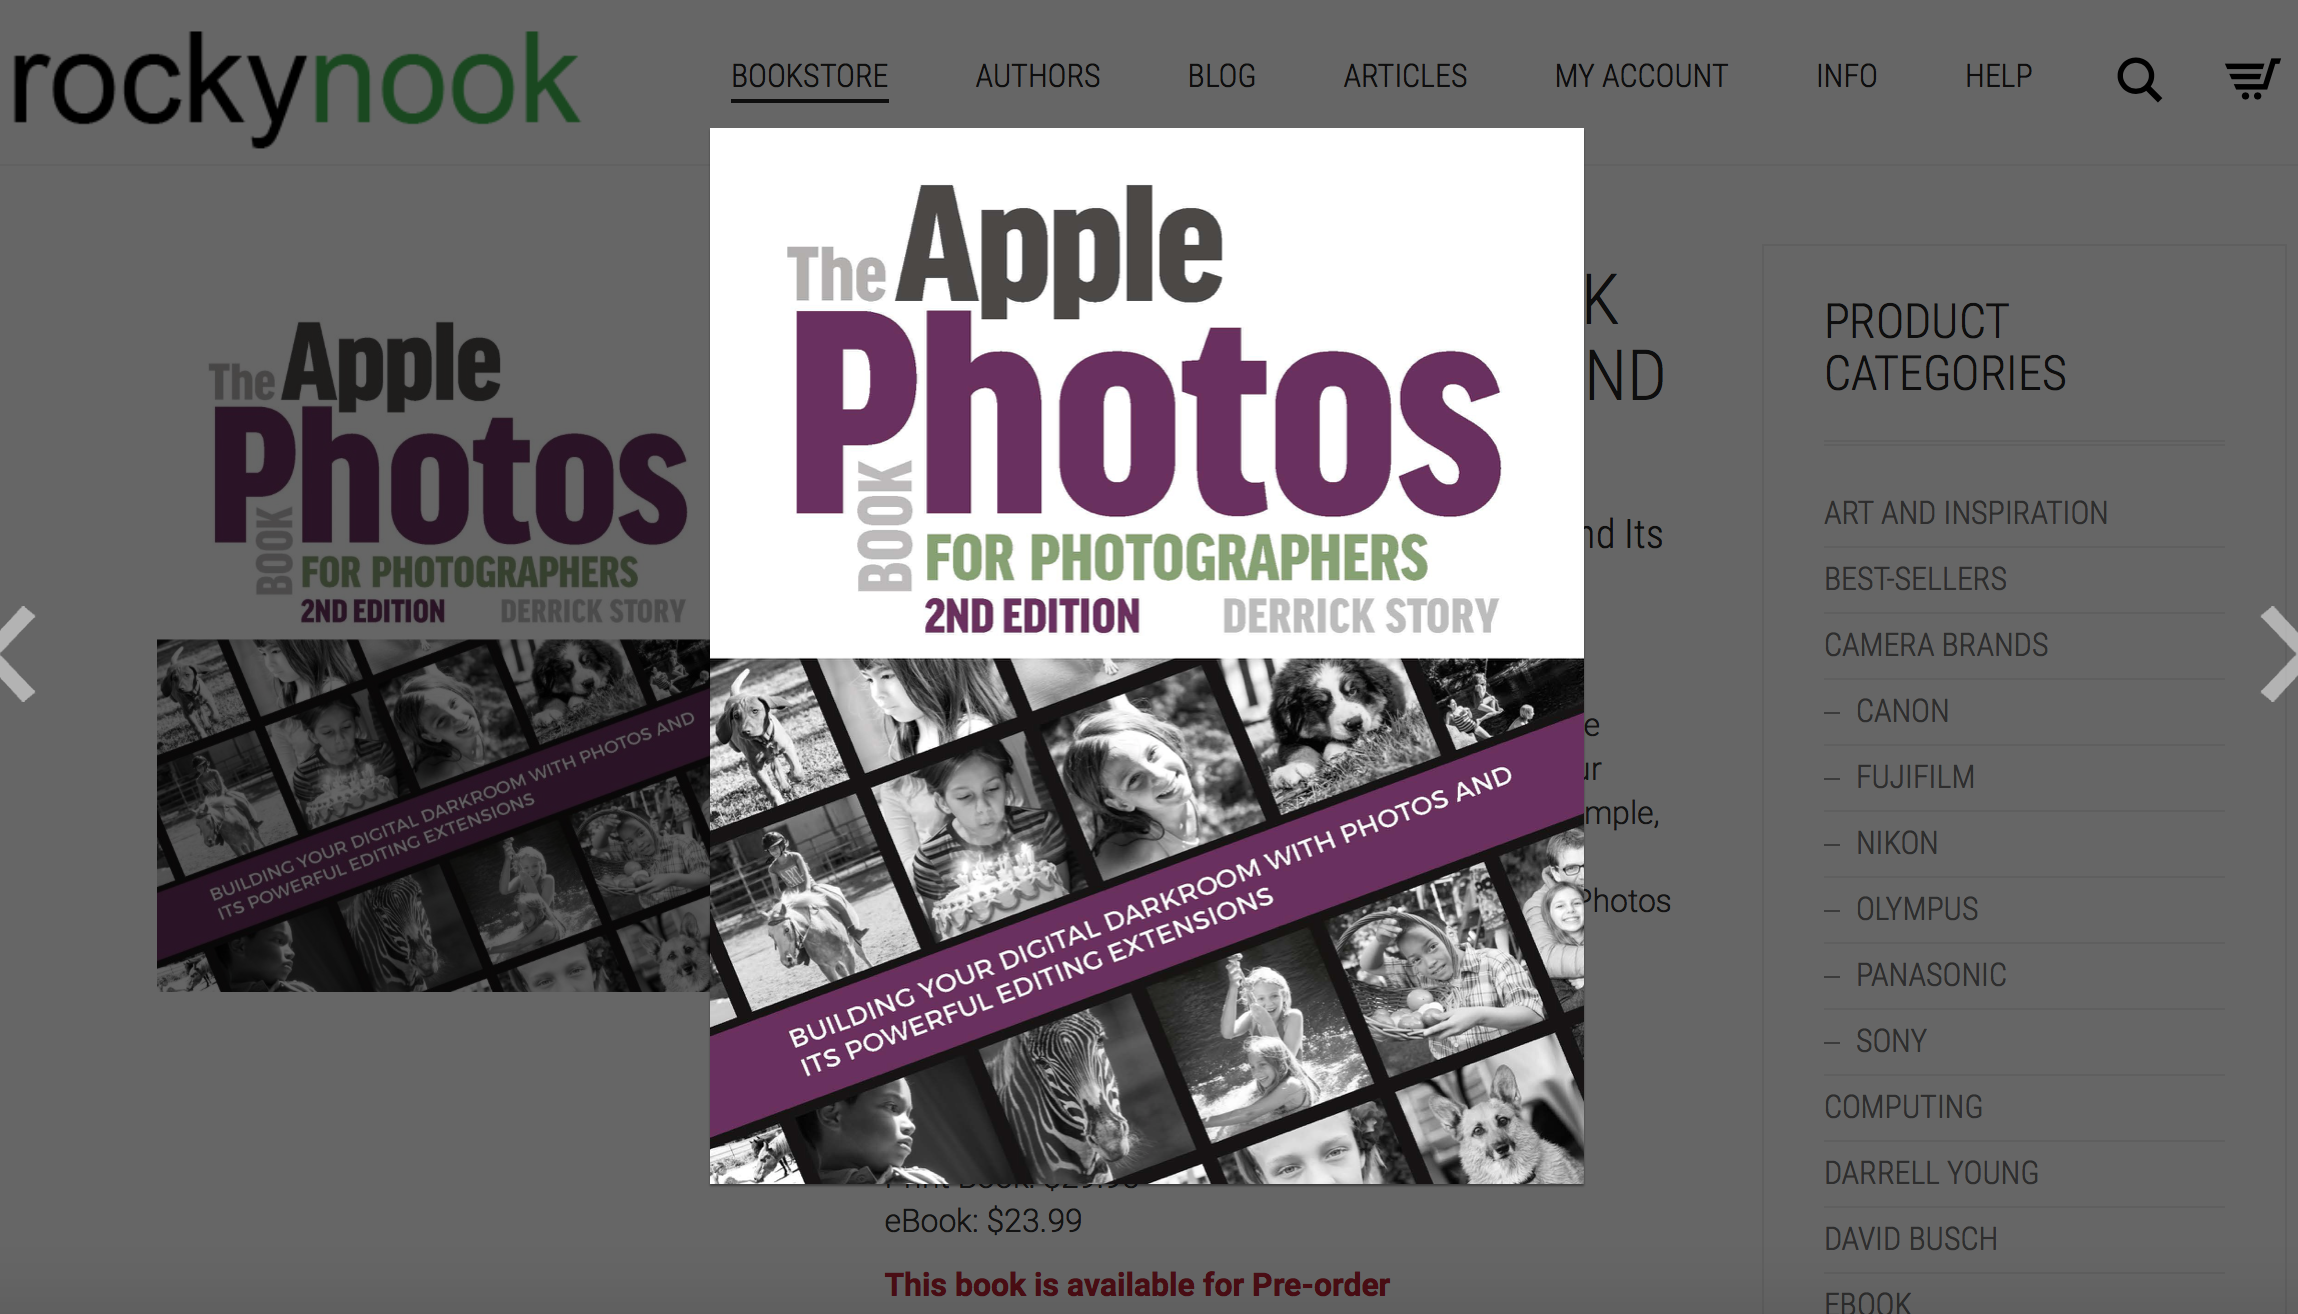 http://thedigitalstory.com/2018/03/05/Apple-Photos-Book.png